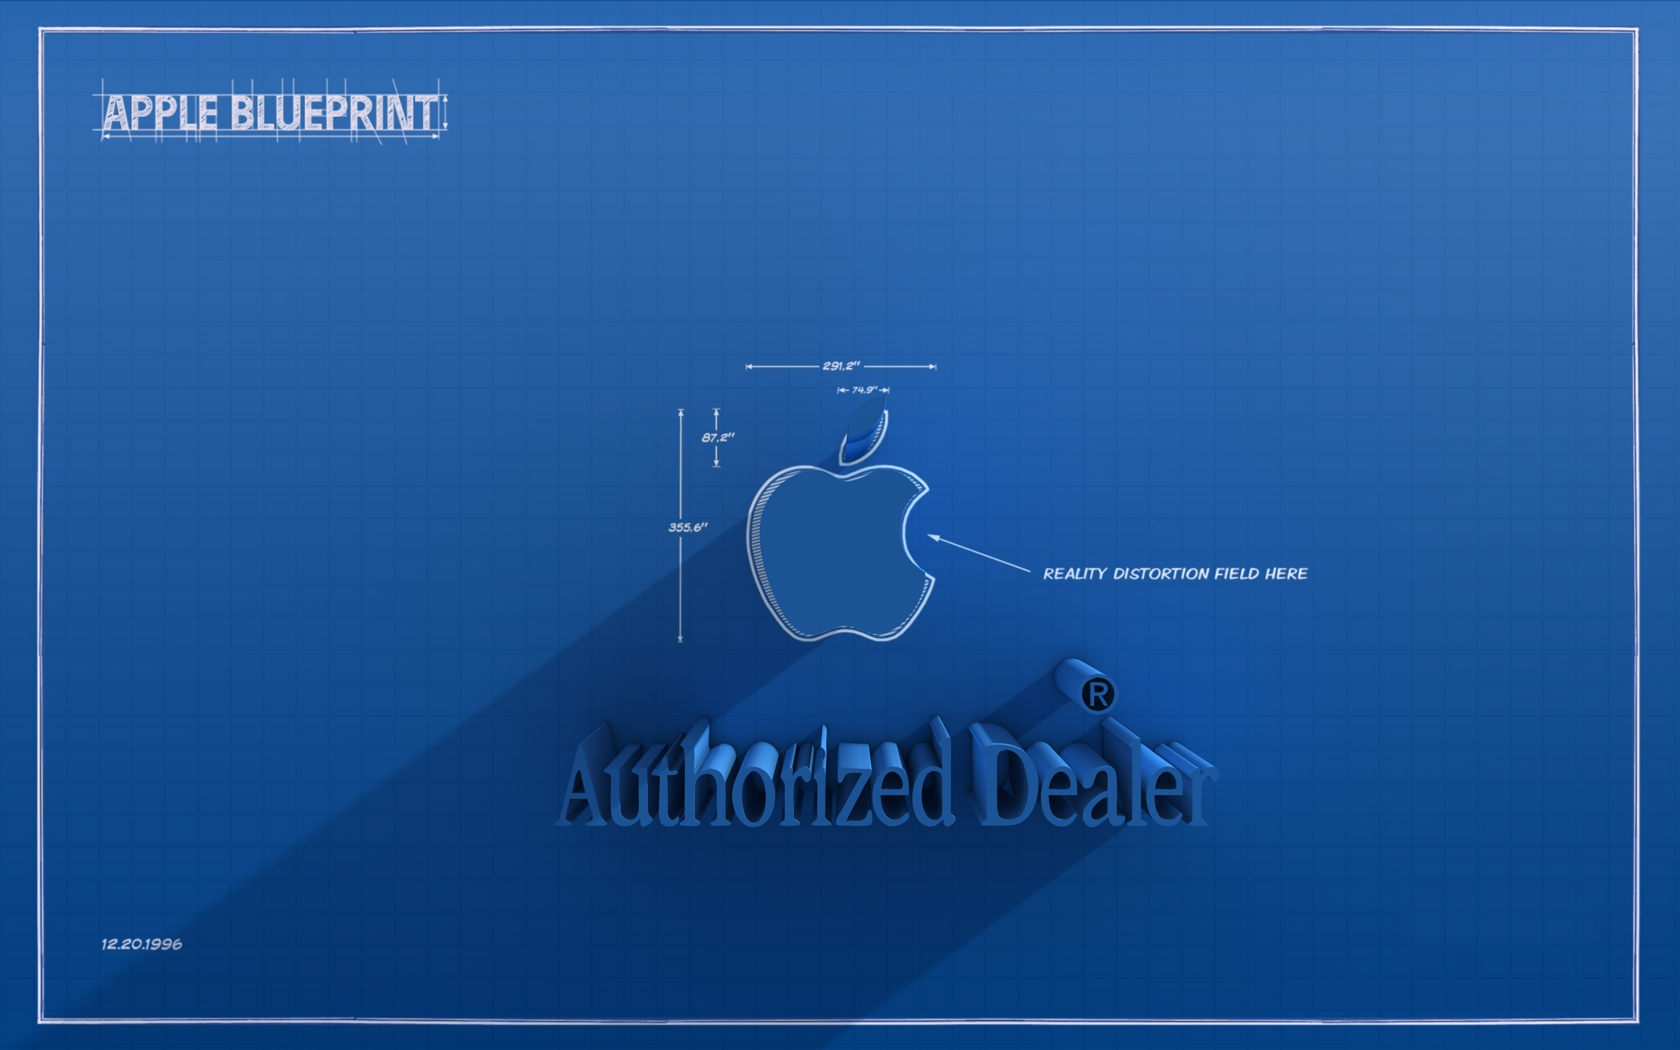 Apple blueprint logo by dracu teufel666 on deviantart apple blueprint logo by dracu teufel666 malvernweather Images